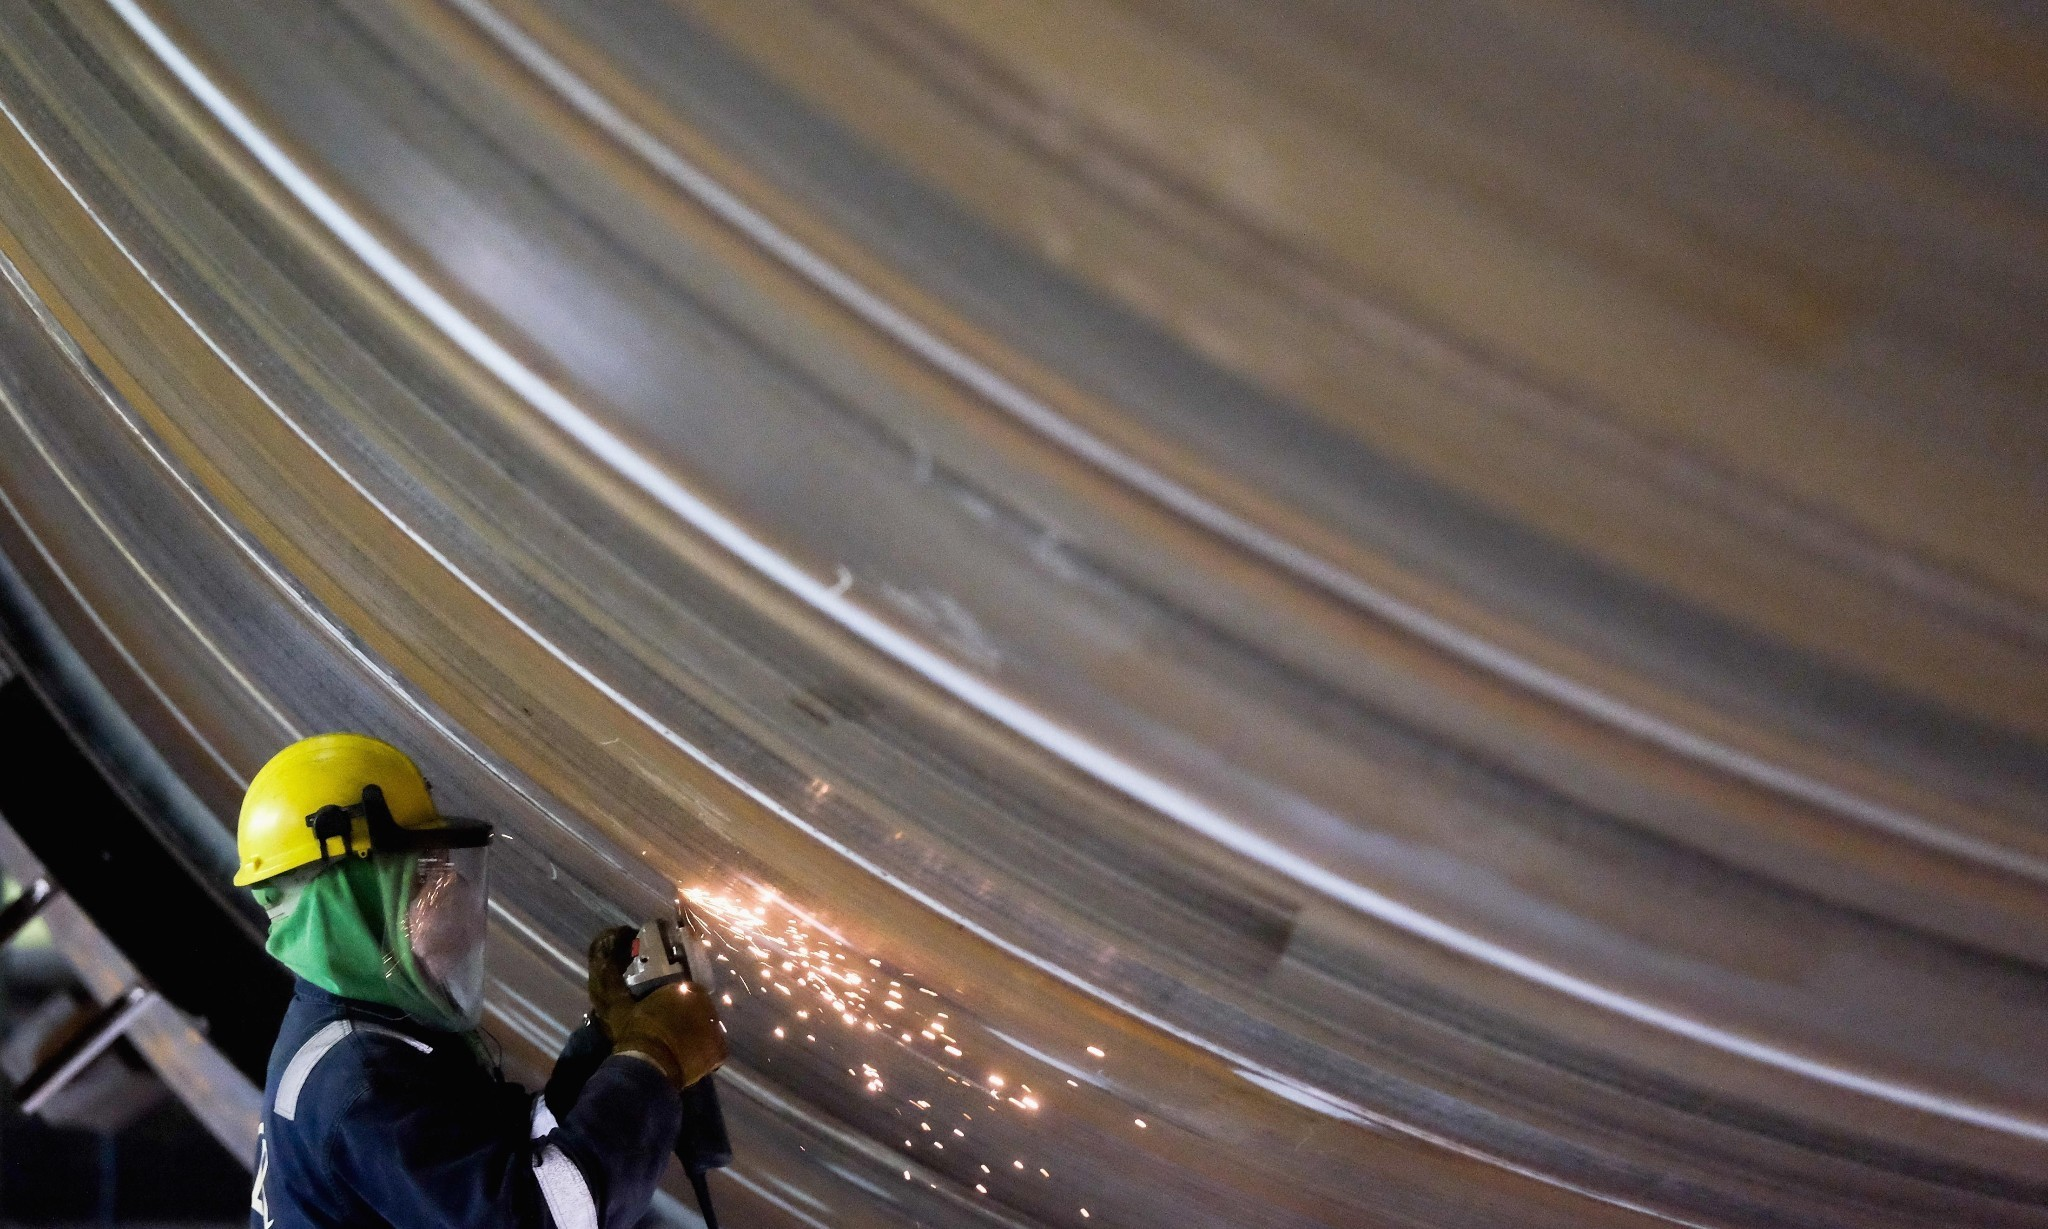 UK manufacturing and construction ended 2016 on a strong note